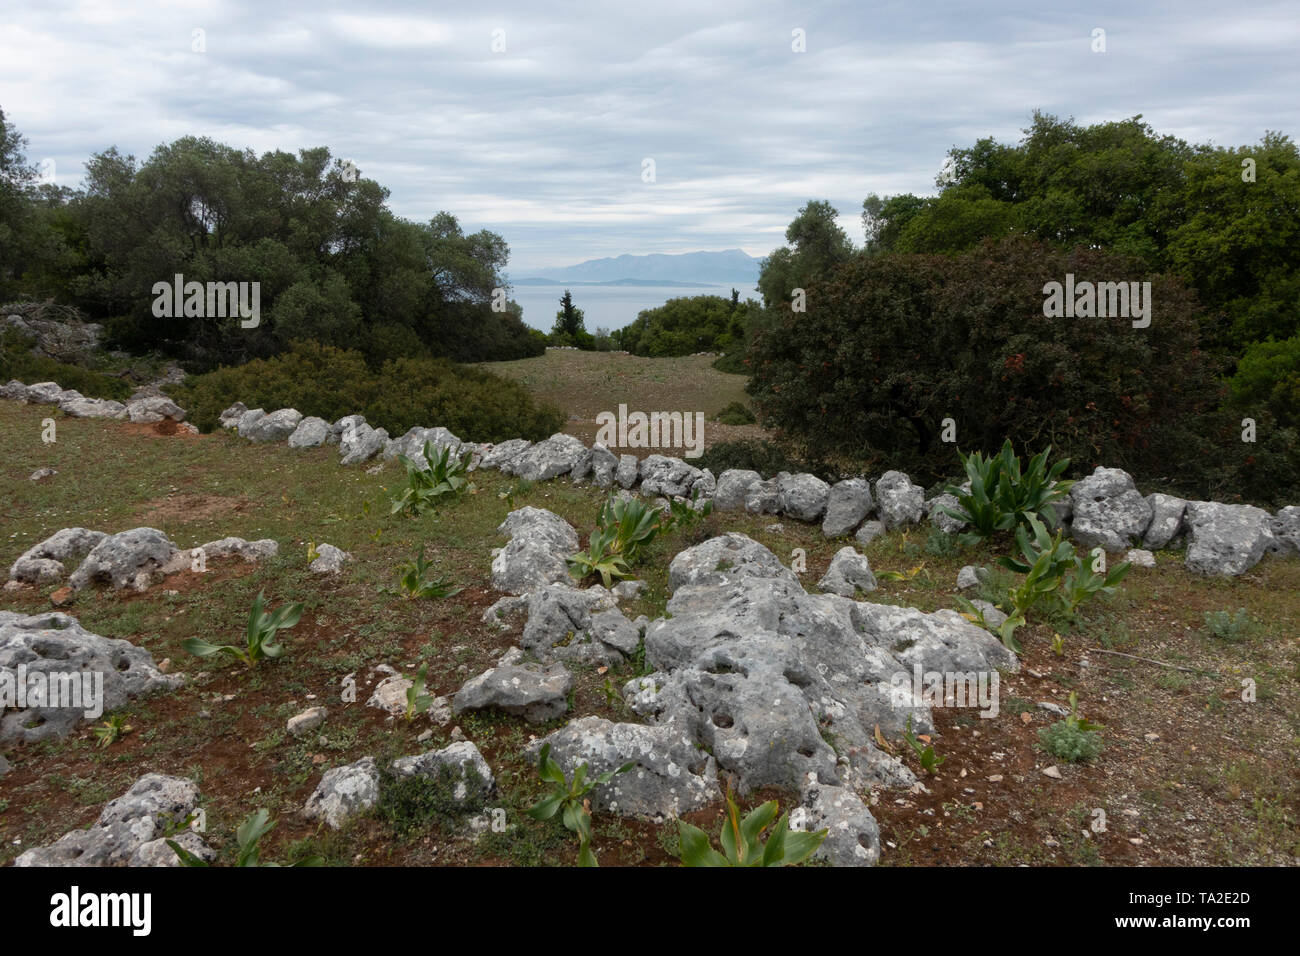 Ancient settlement site near Kioni, Ithaca, Greece. Ithaca, Ithaki or Ithaka is a Greek island located in the Ionian Sea to the west of continental Greece. Ithacas main island has an area of 96 square kilometres. It is the second-smallest of seven main Ionian Islands. - Stock Image